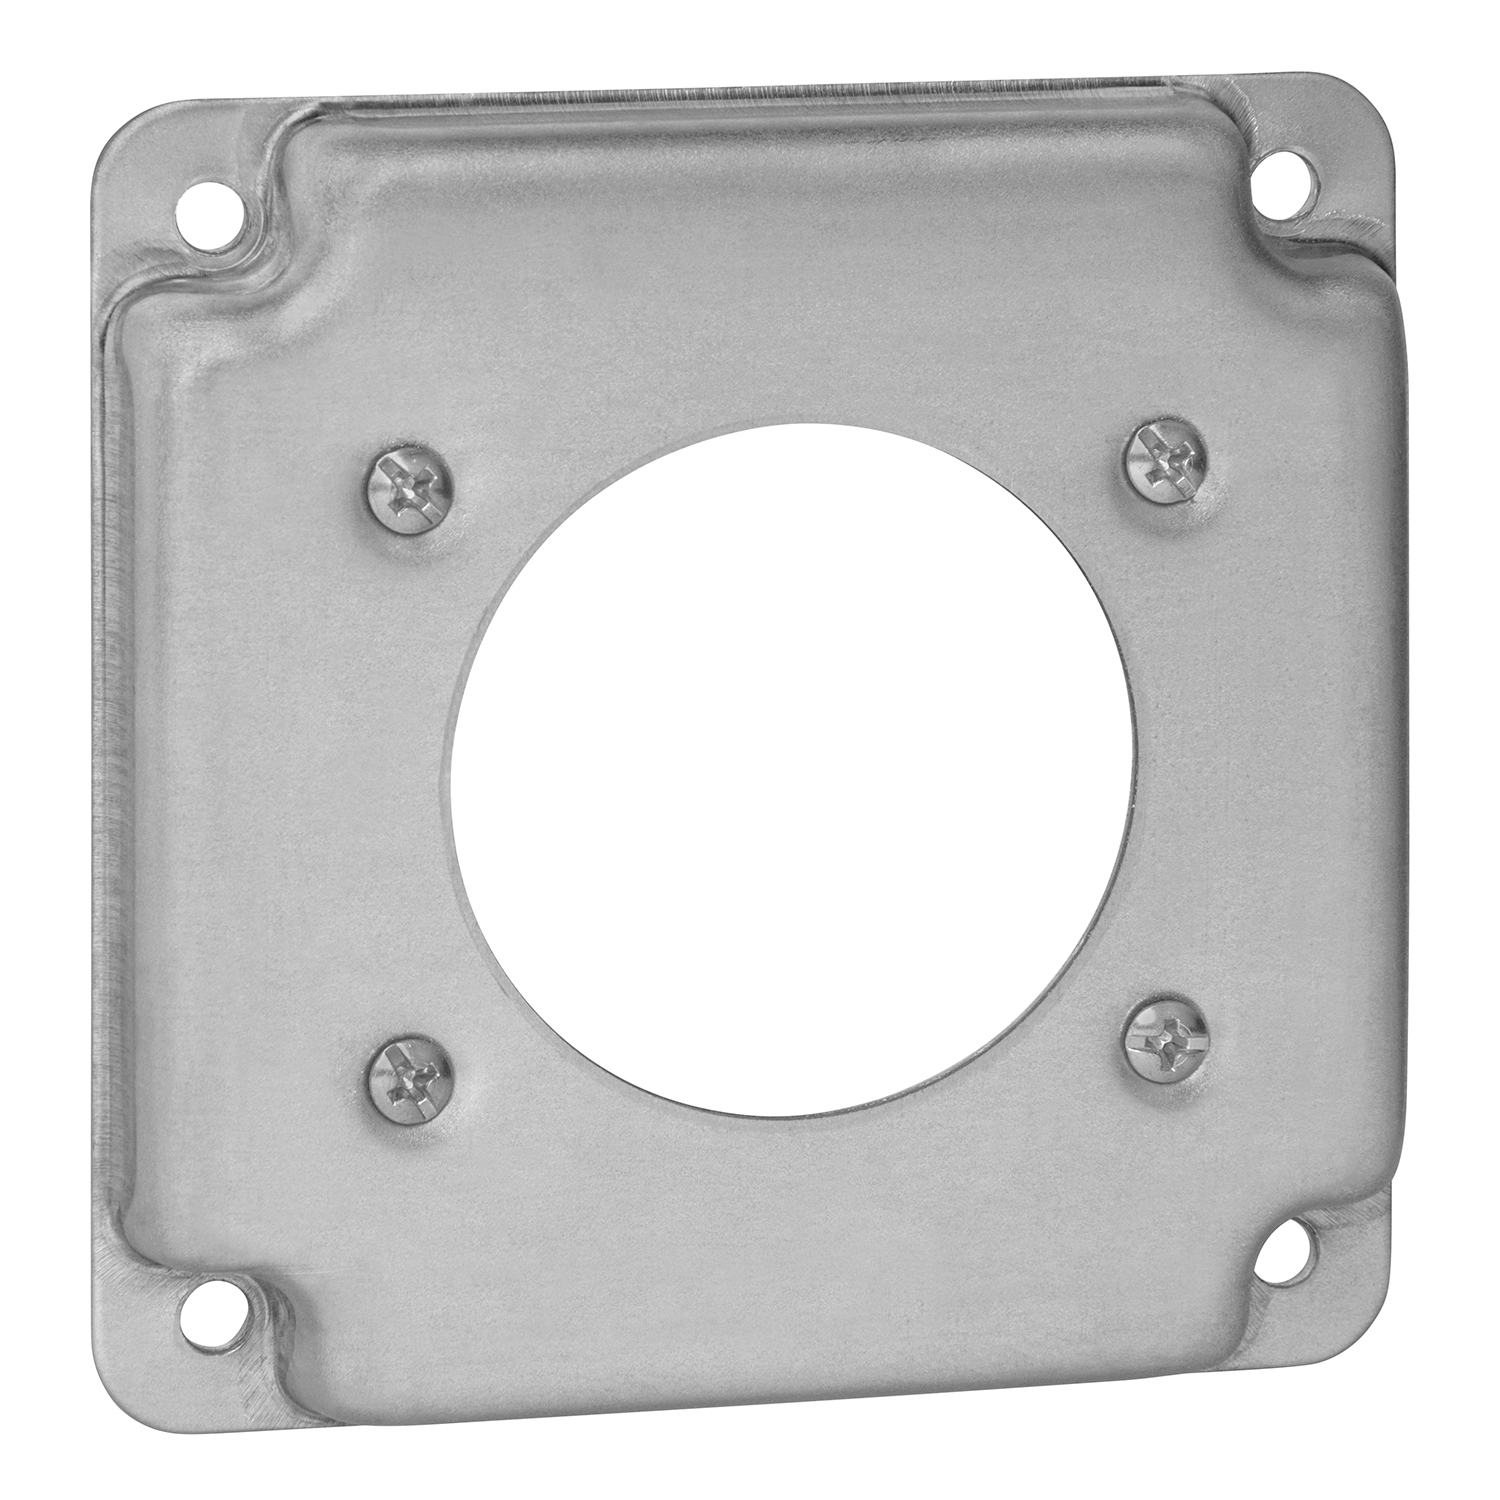 """STEELCTY RS13 4"""" SQUARE BOX COVER, STEEL, 5CU, 1-30/50A RECEPTACLE"""